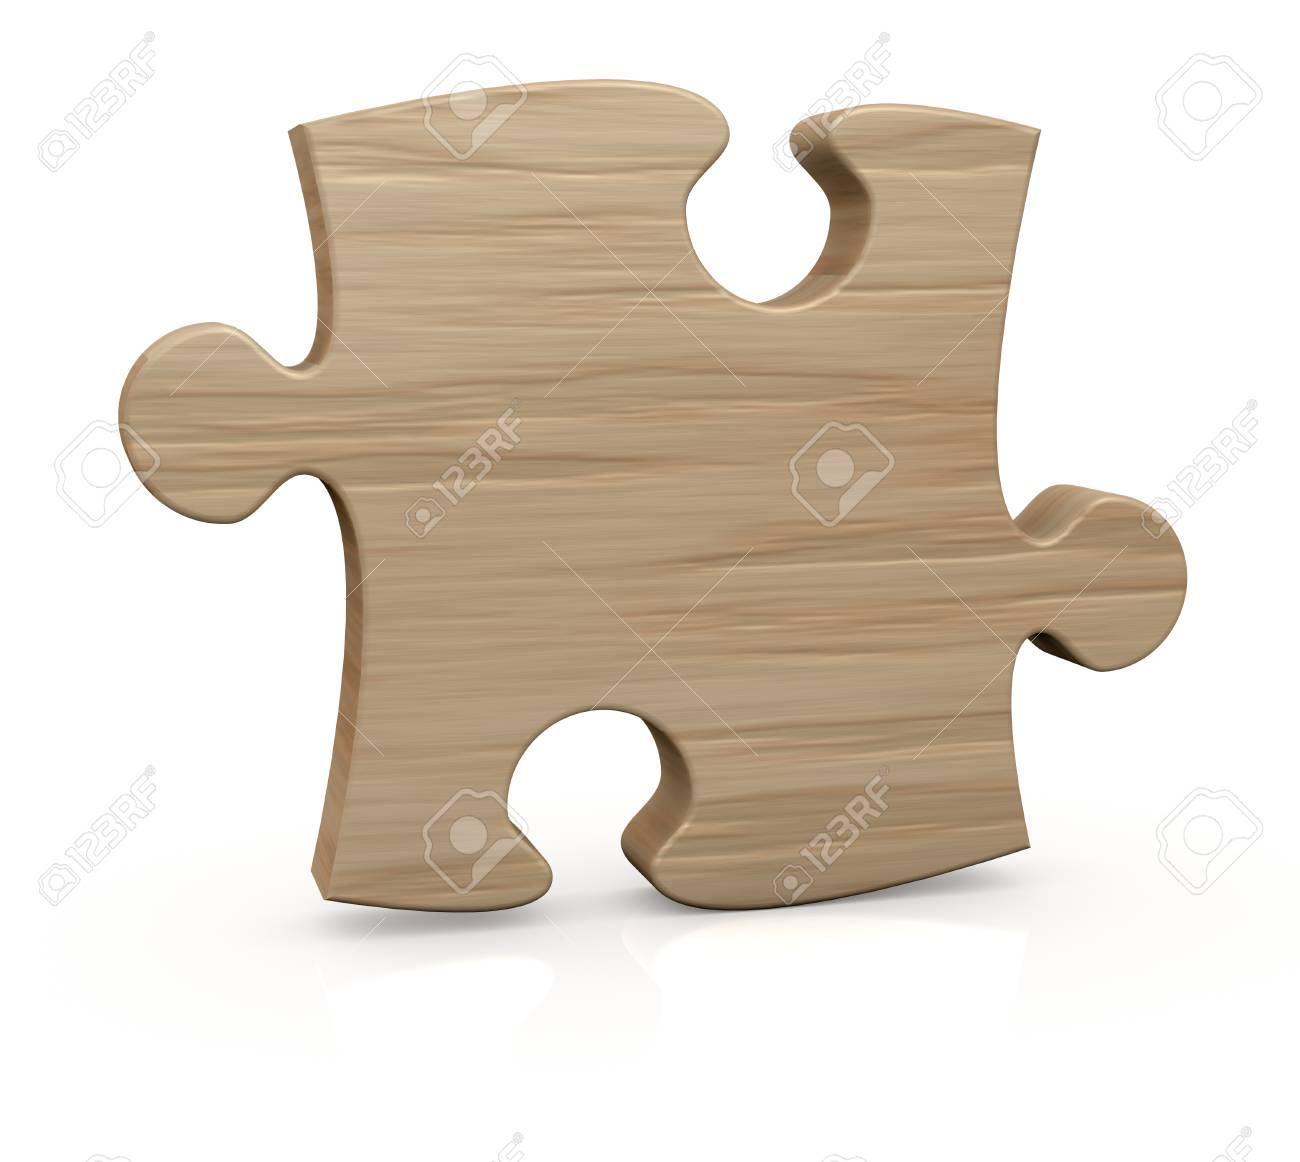 One Wooden Piece Of A Jigsaw Puzzle 3d Render Stock Photo